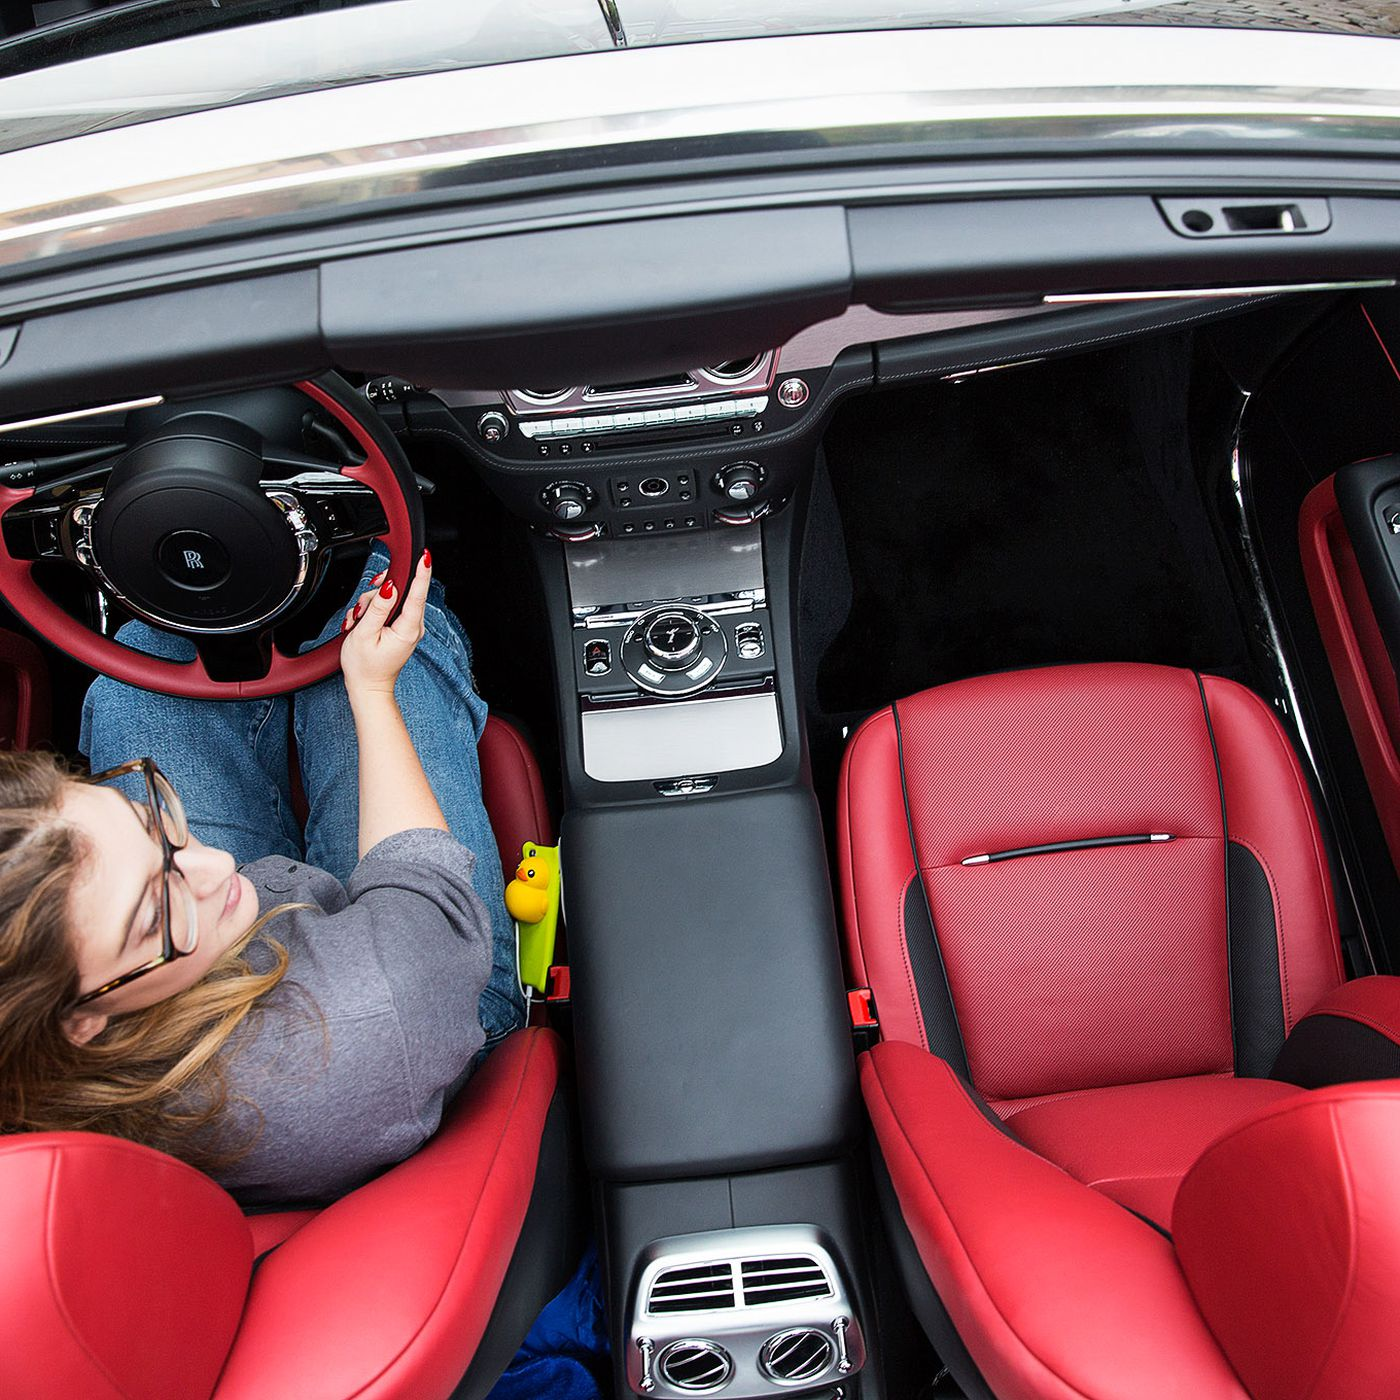 Driverless minivans, electric race cars, and luxury coupes